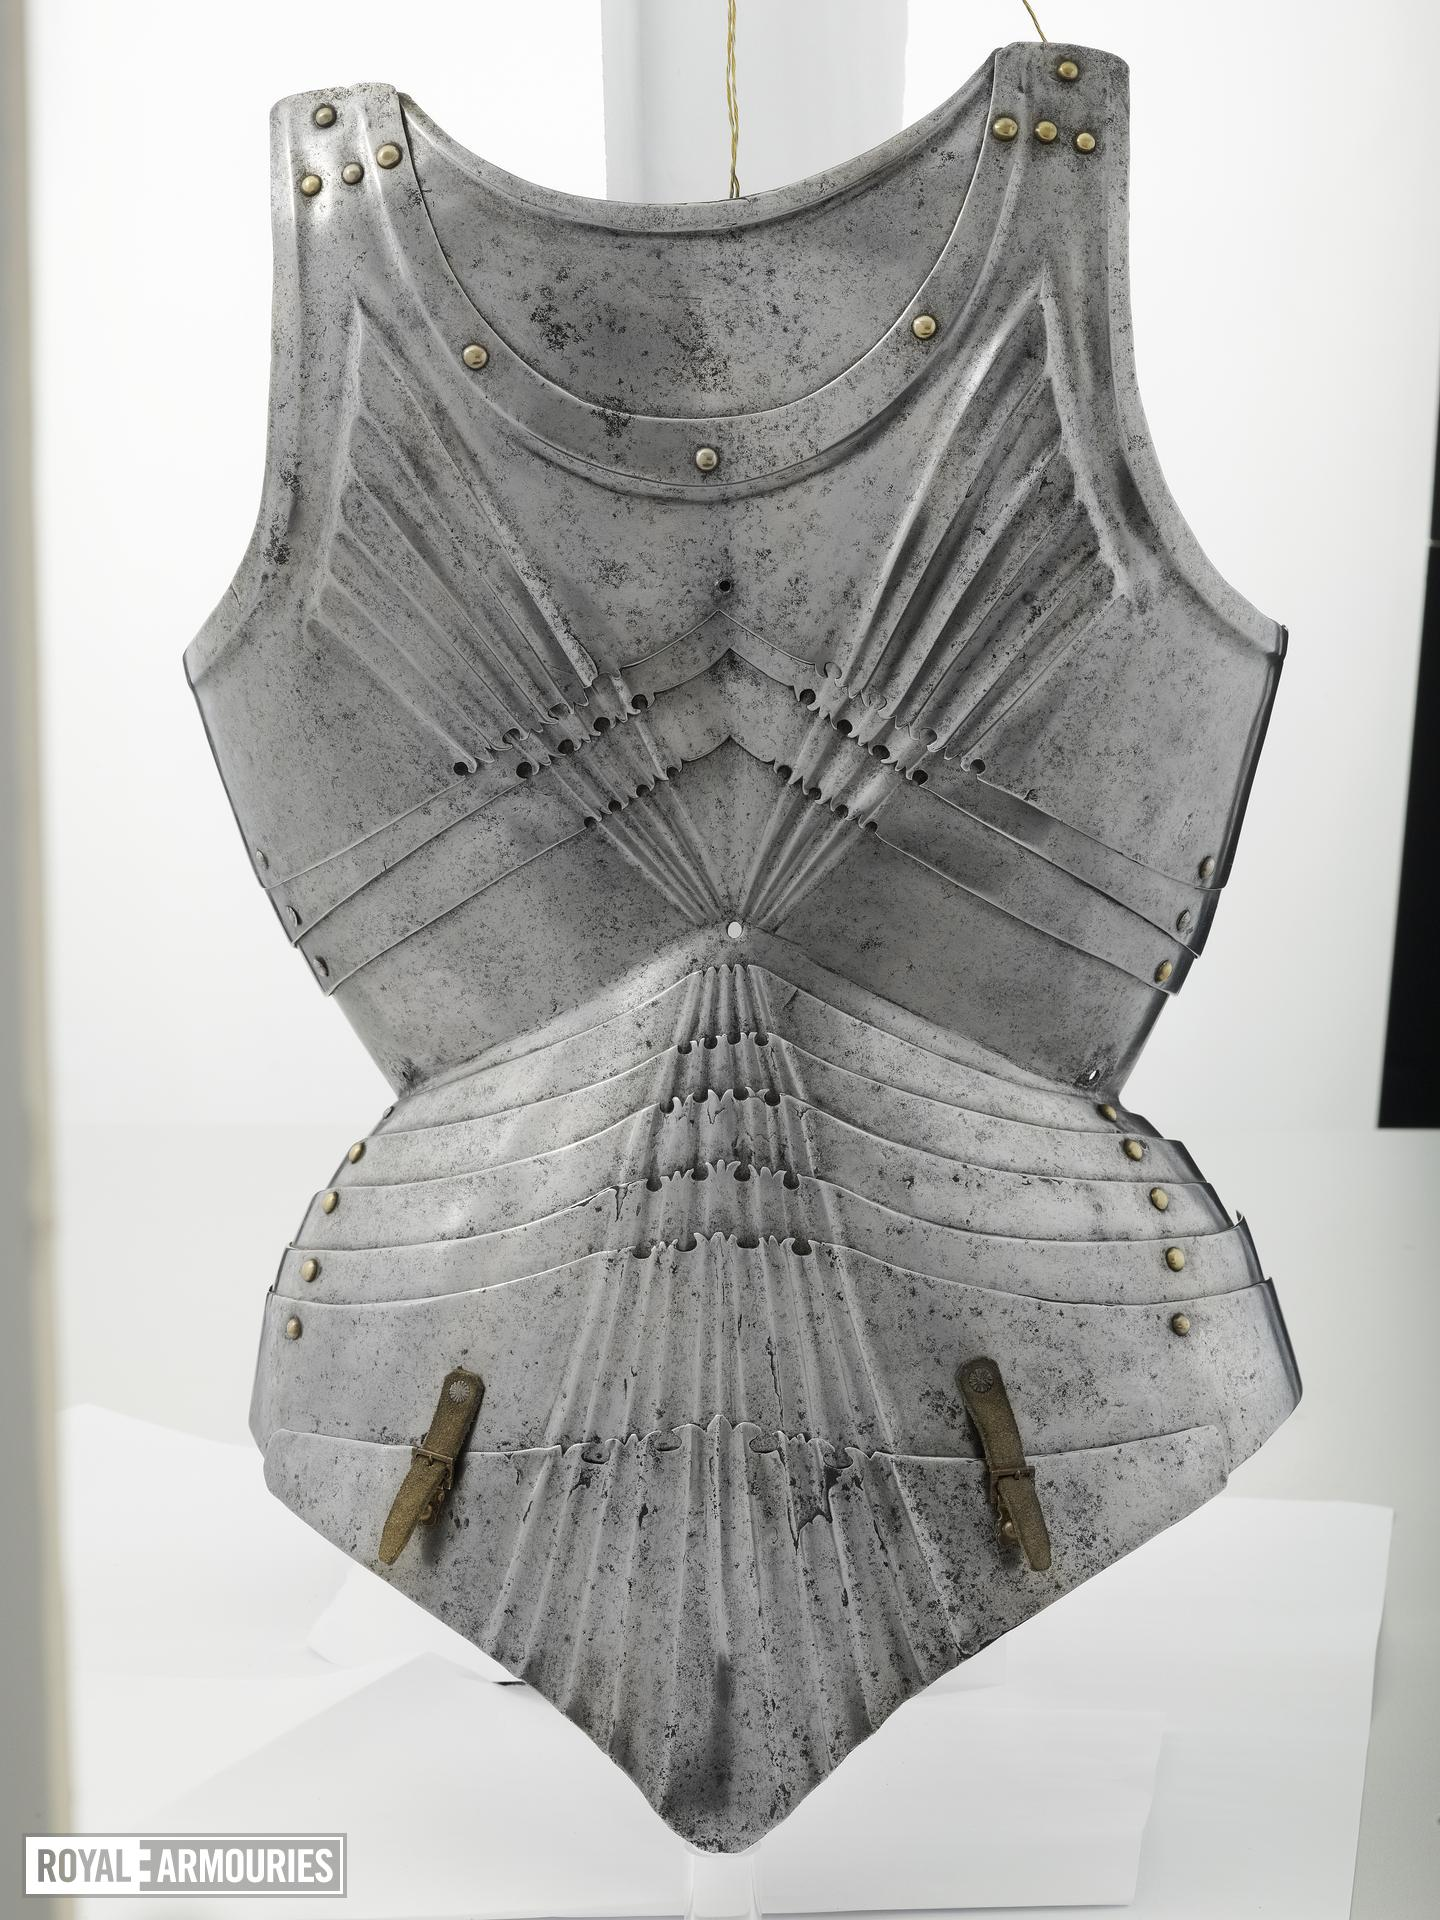 Backplate of Gothic form, German, about 1480-90